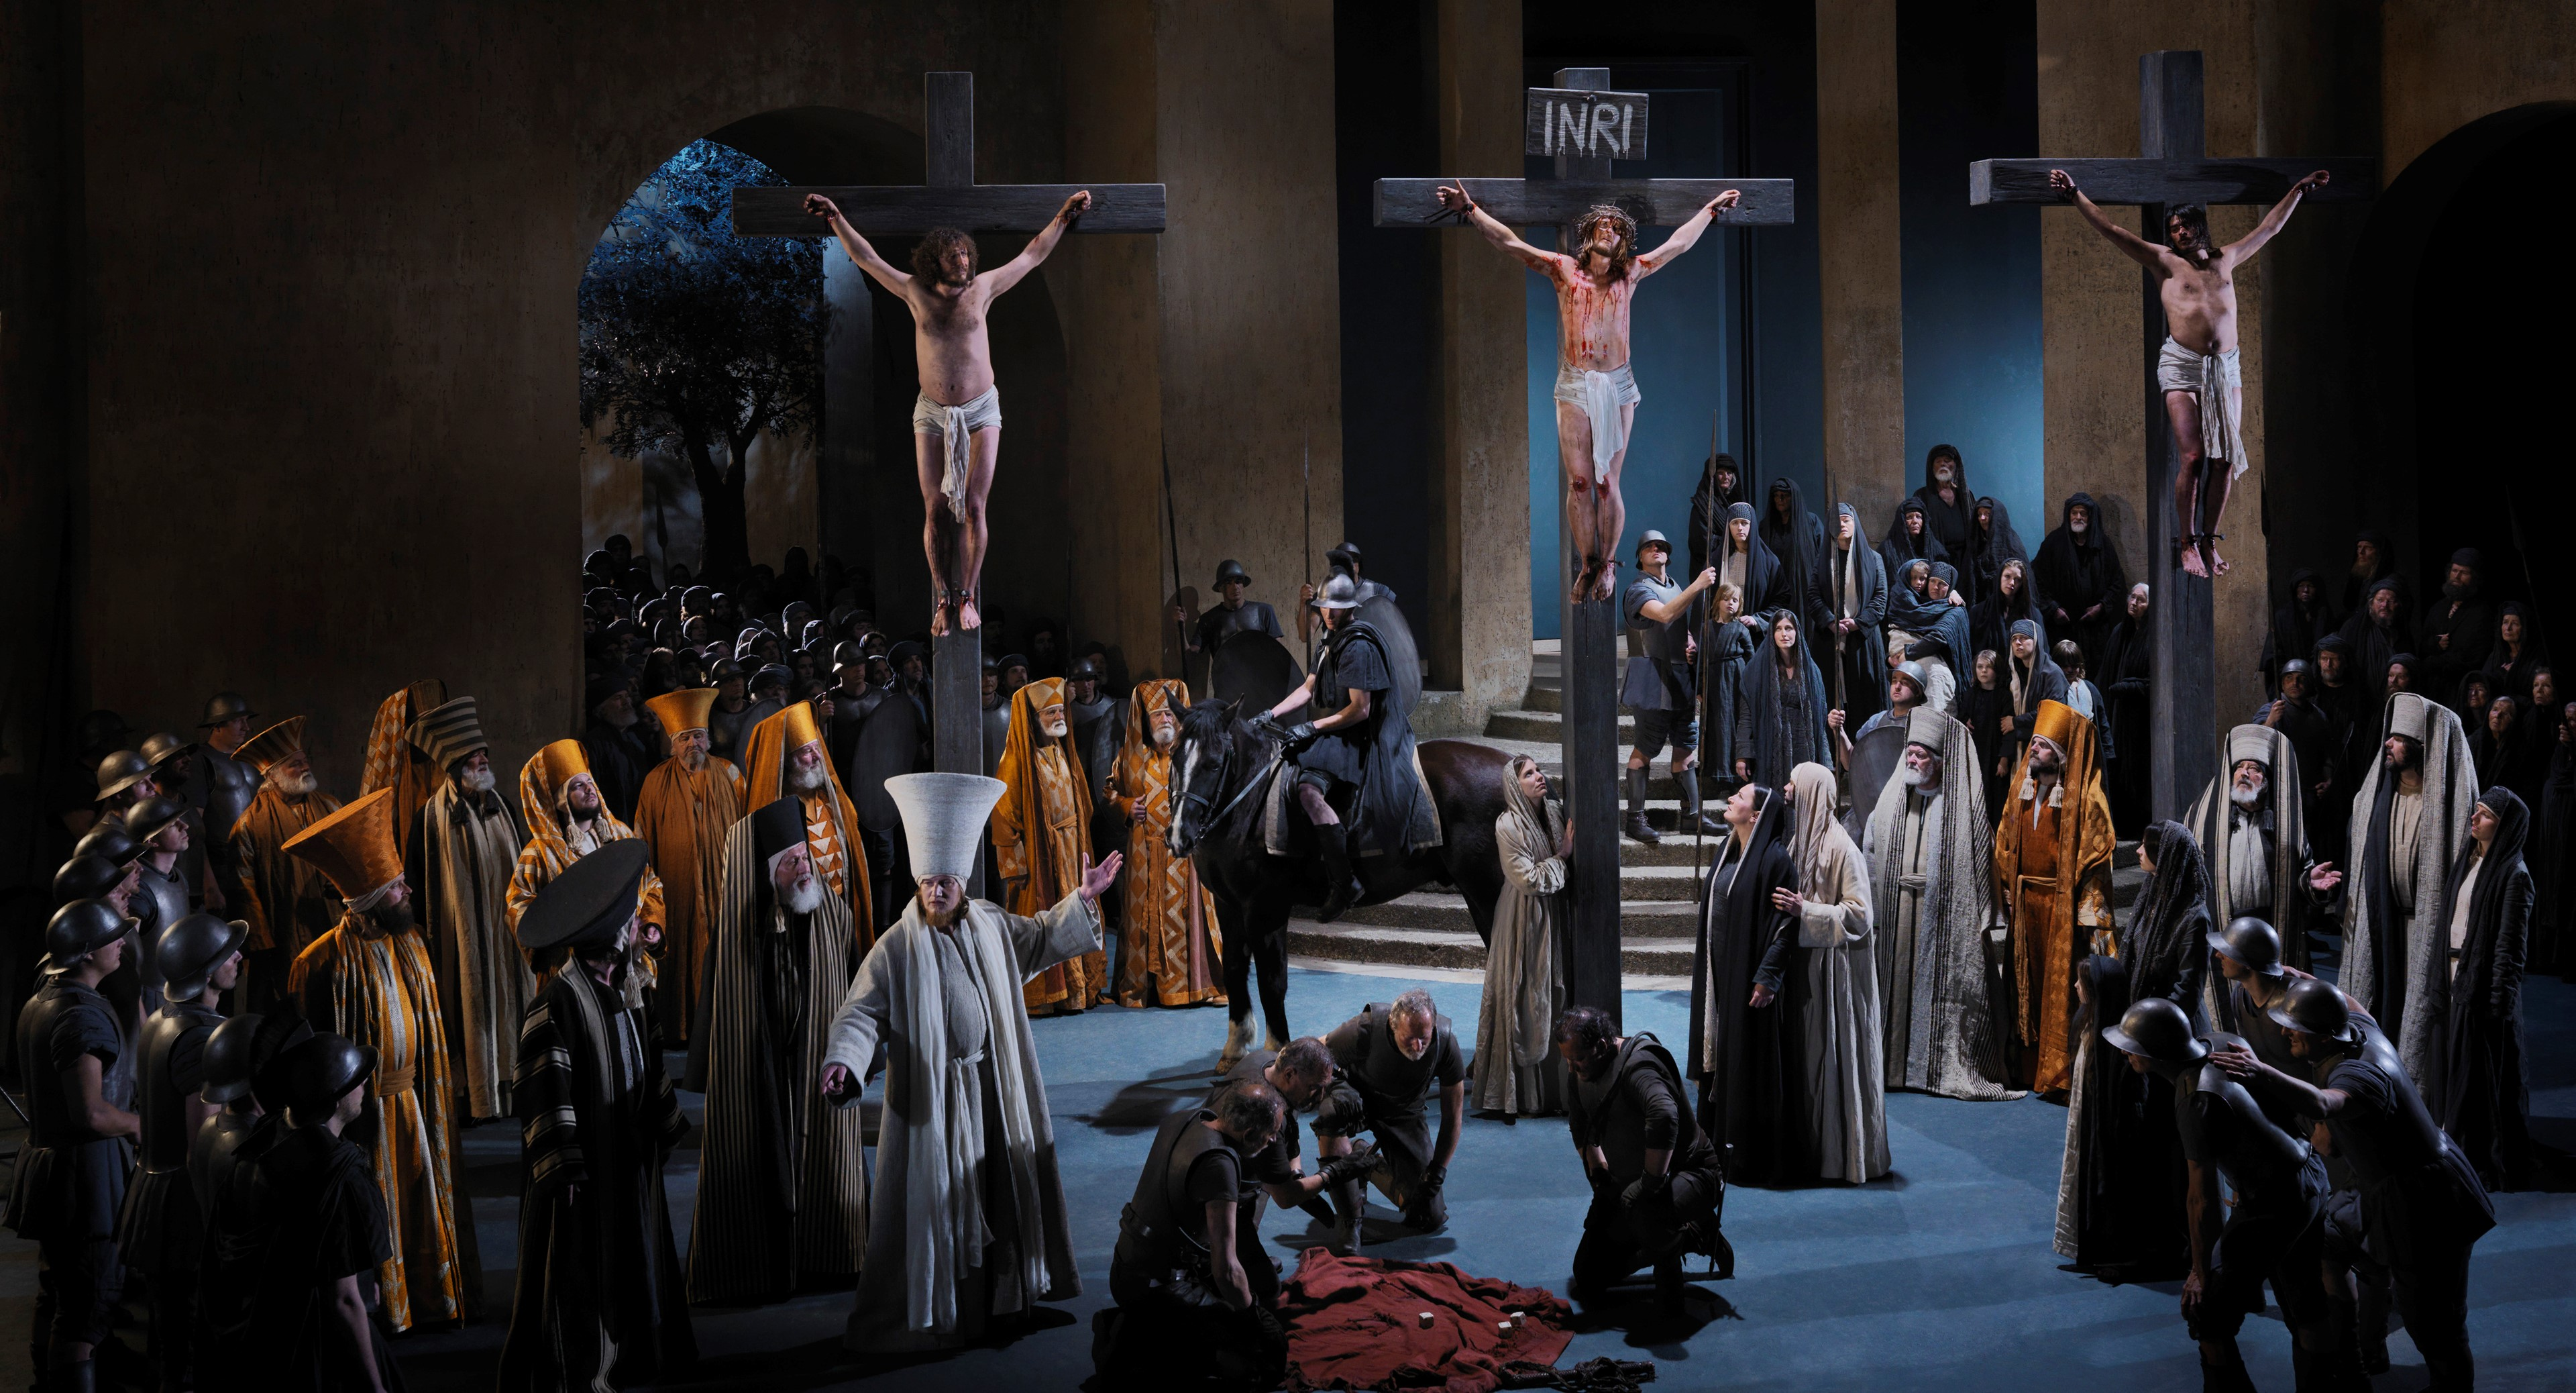 The iconic Passion Play in Oberammergau